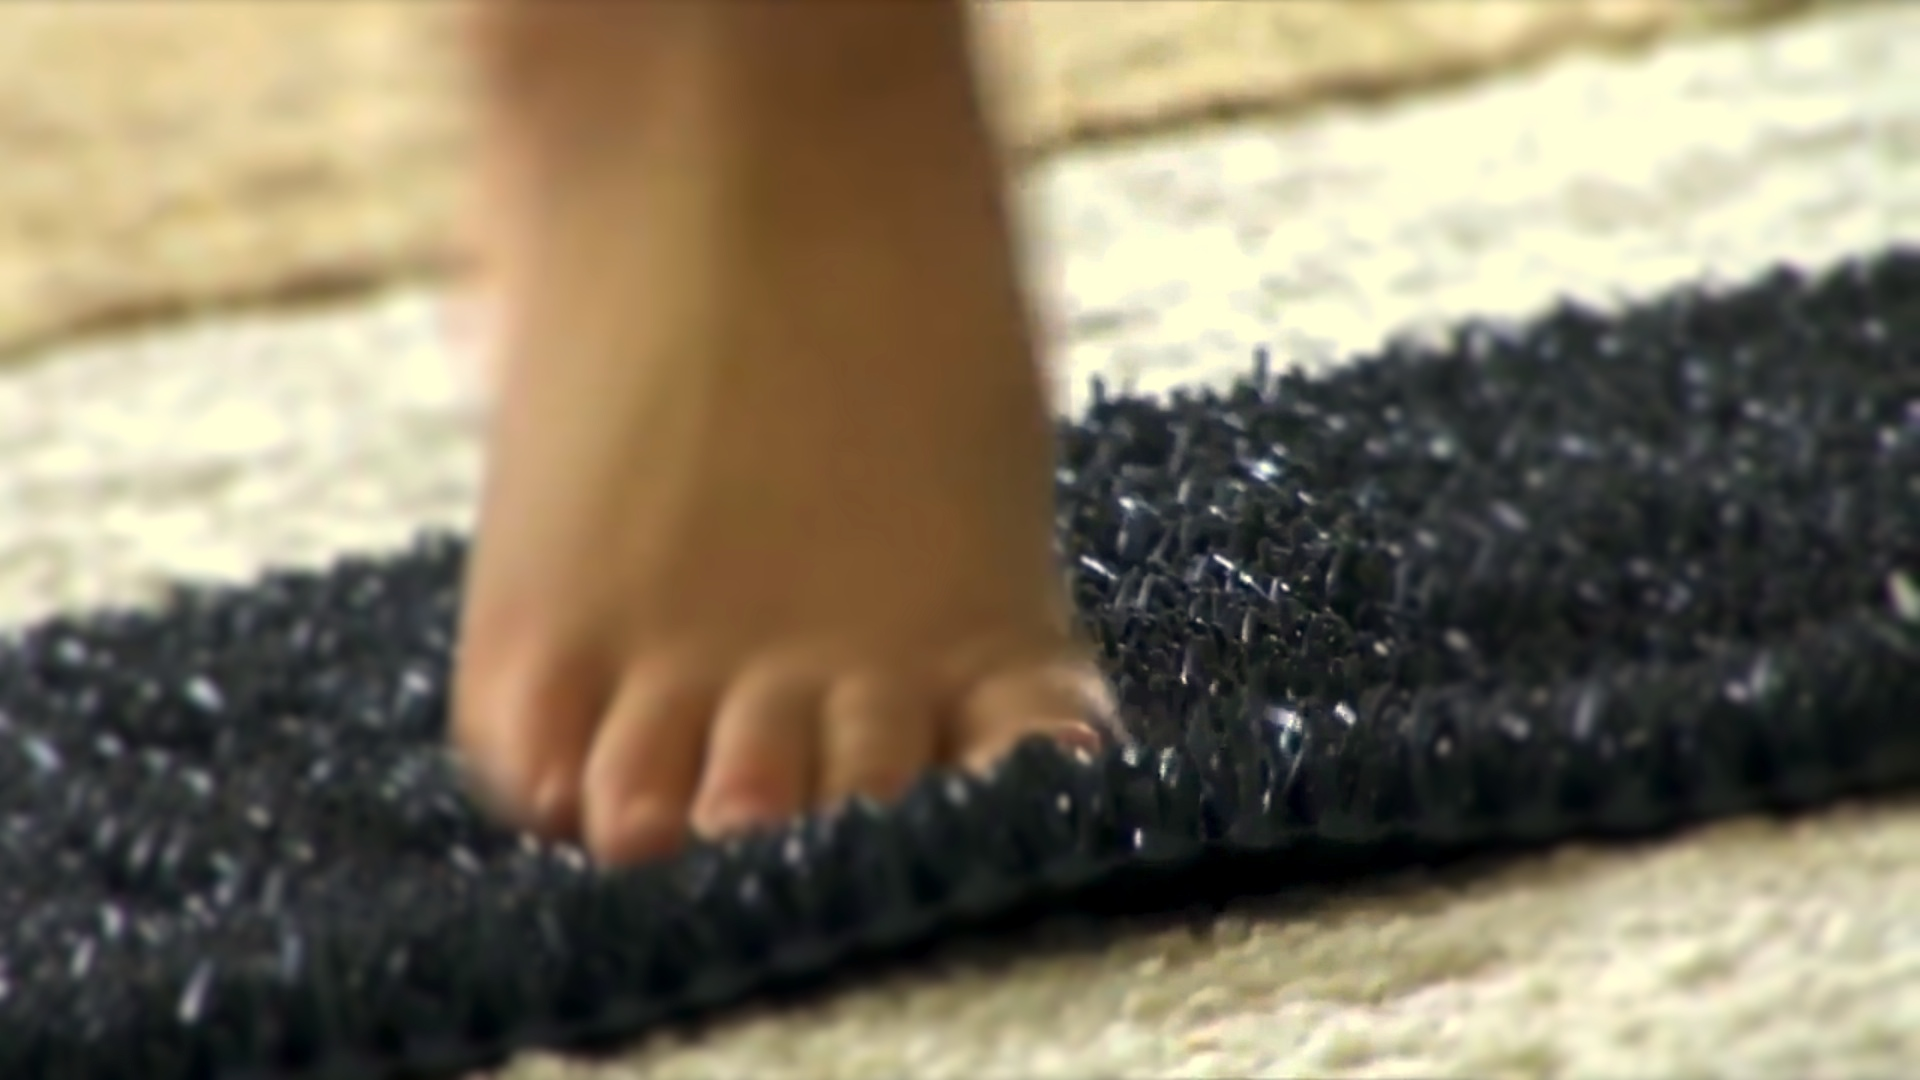 Foot on Textured Doormat for Sensory Enrichment Therapy for Autism